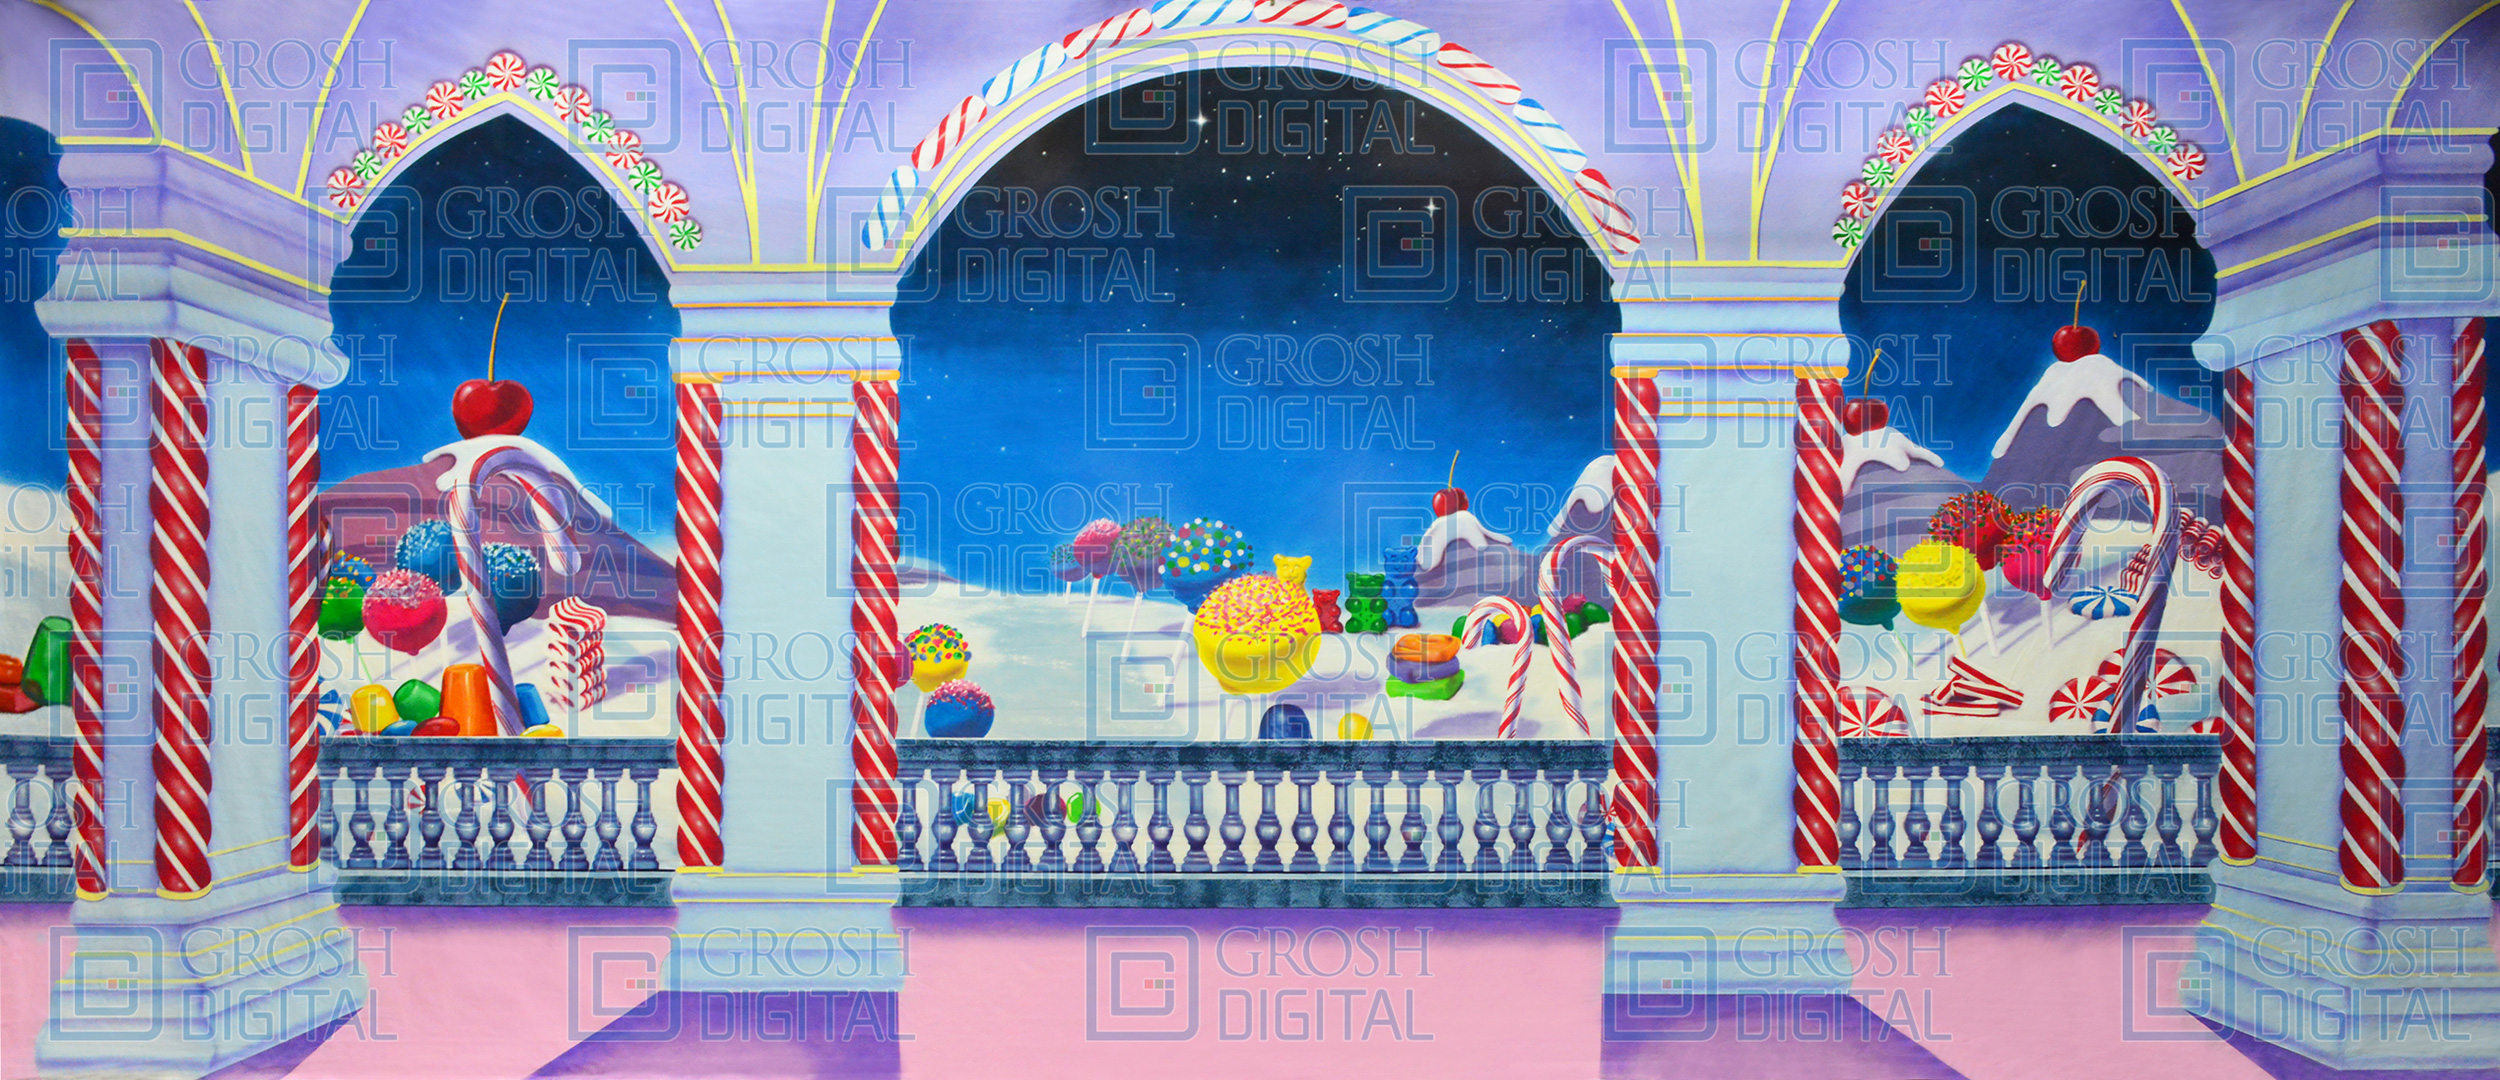 Fantasy Candyland Projected Backdrop for Dance, Land of the Sweets, Nutcracker